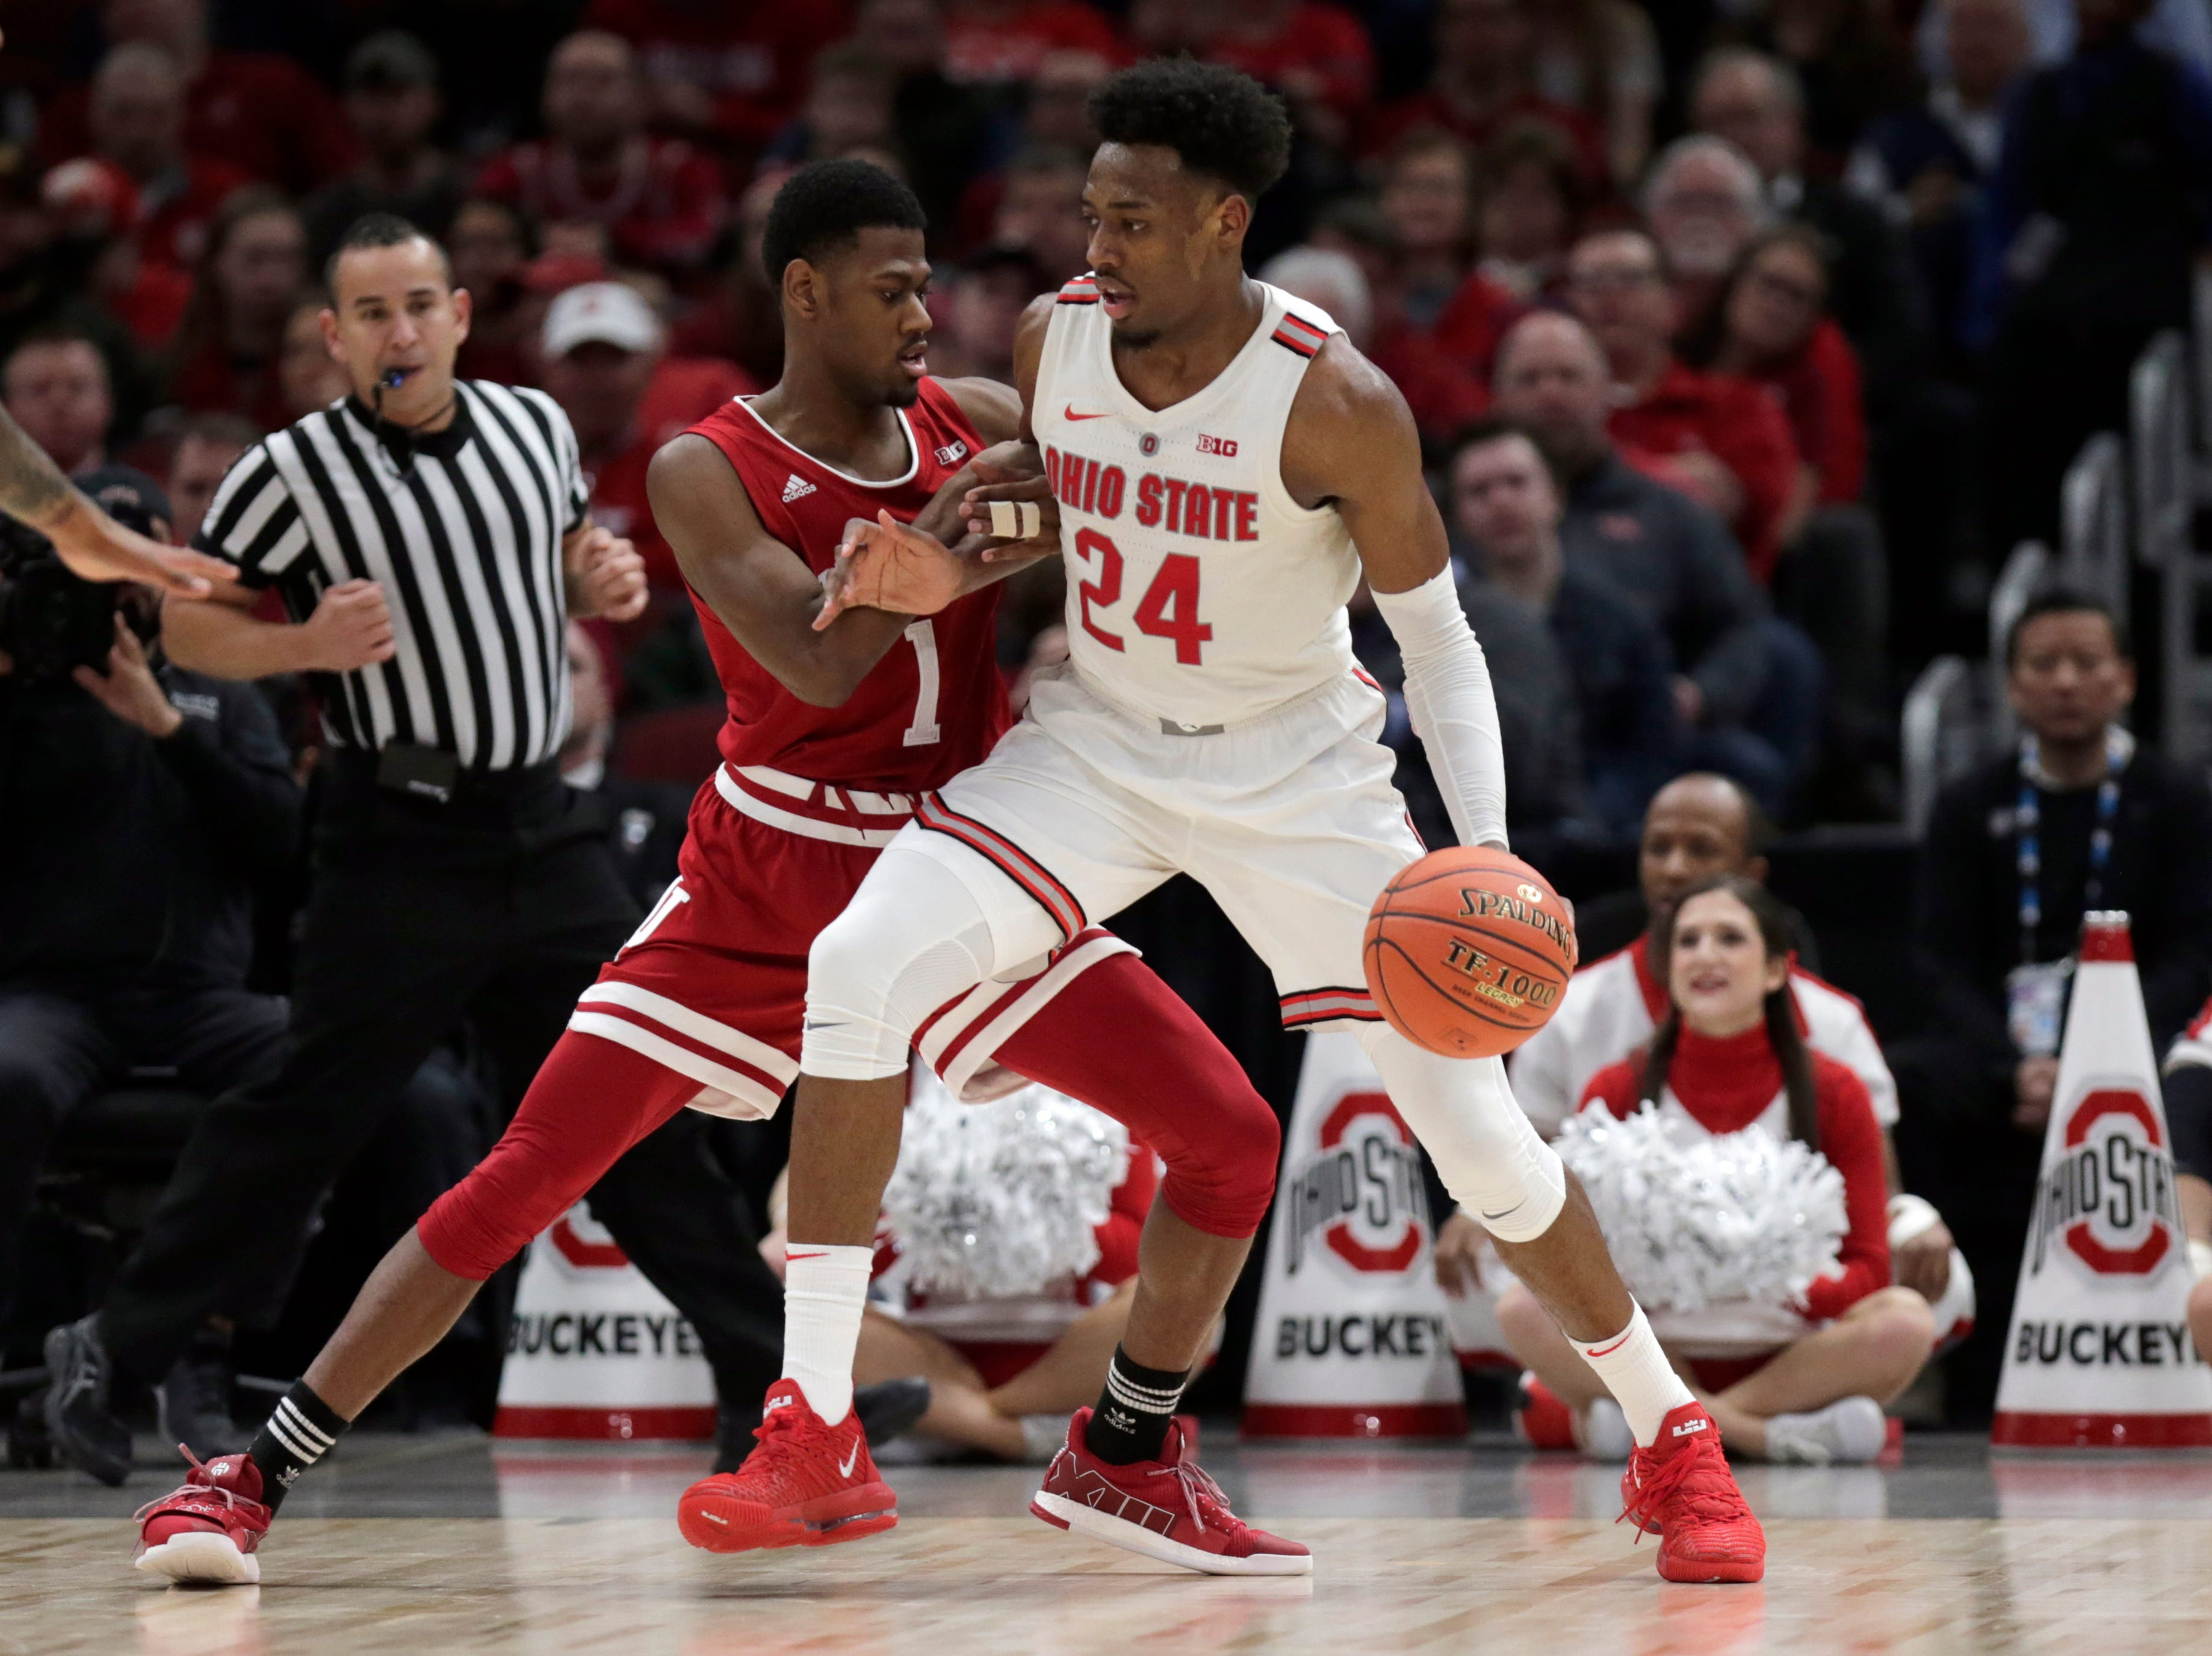 Ohio State's Andre Wesson (24) drives against Indiana's Aljami Durham (1) during the second half of an NCAA college basketball game in the second round of the Big Ten Conference tournament, Thursday, March 14, 2019, in Chicago. (AP Photo/Kiichiro Sato)